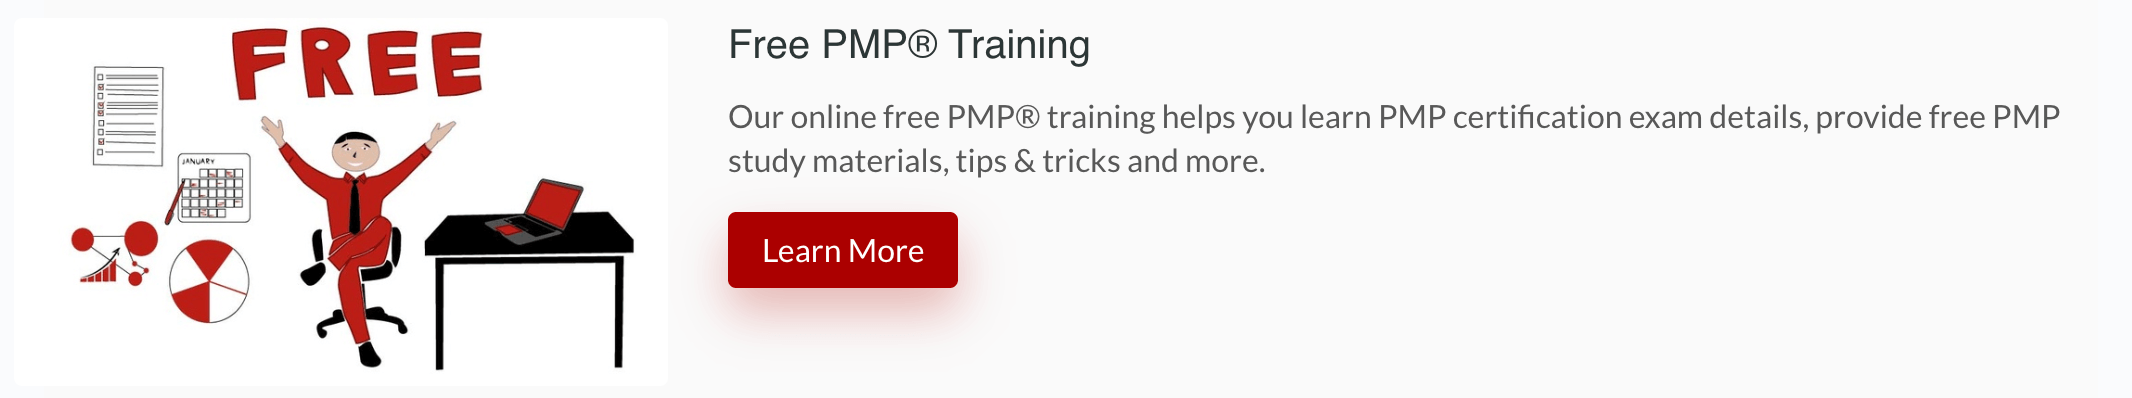 Screen-Shot-2019-10-15-at-22.41.49 #1 PMP Certification Bible - Top 25+ QAs About PMP®